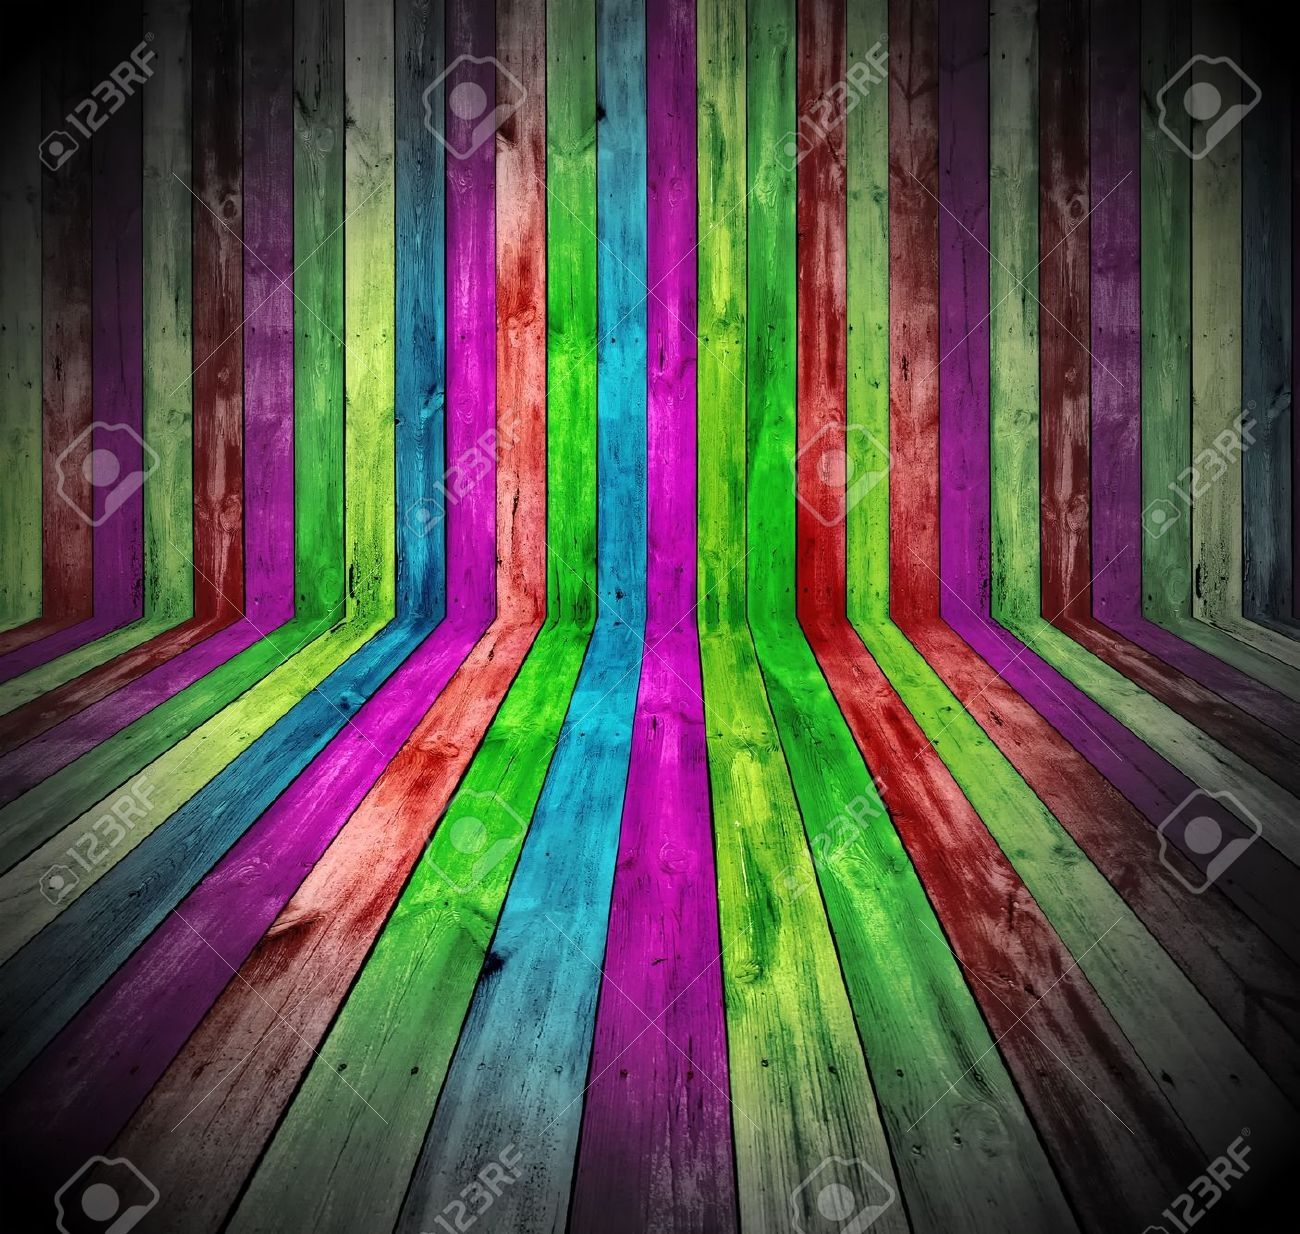 New Cool Vibrant Backgrounds New Cool Vibrant Backgrounds